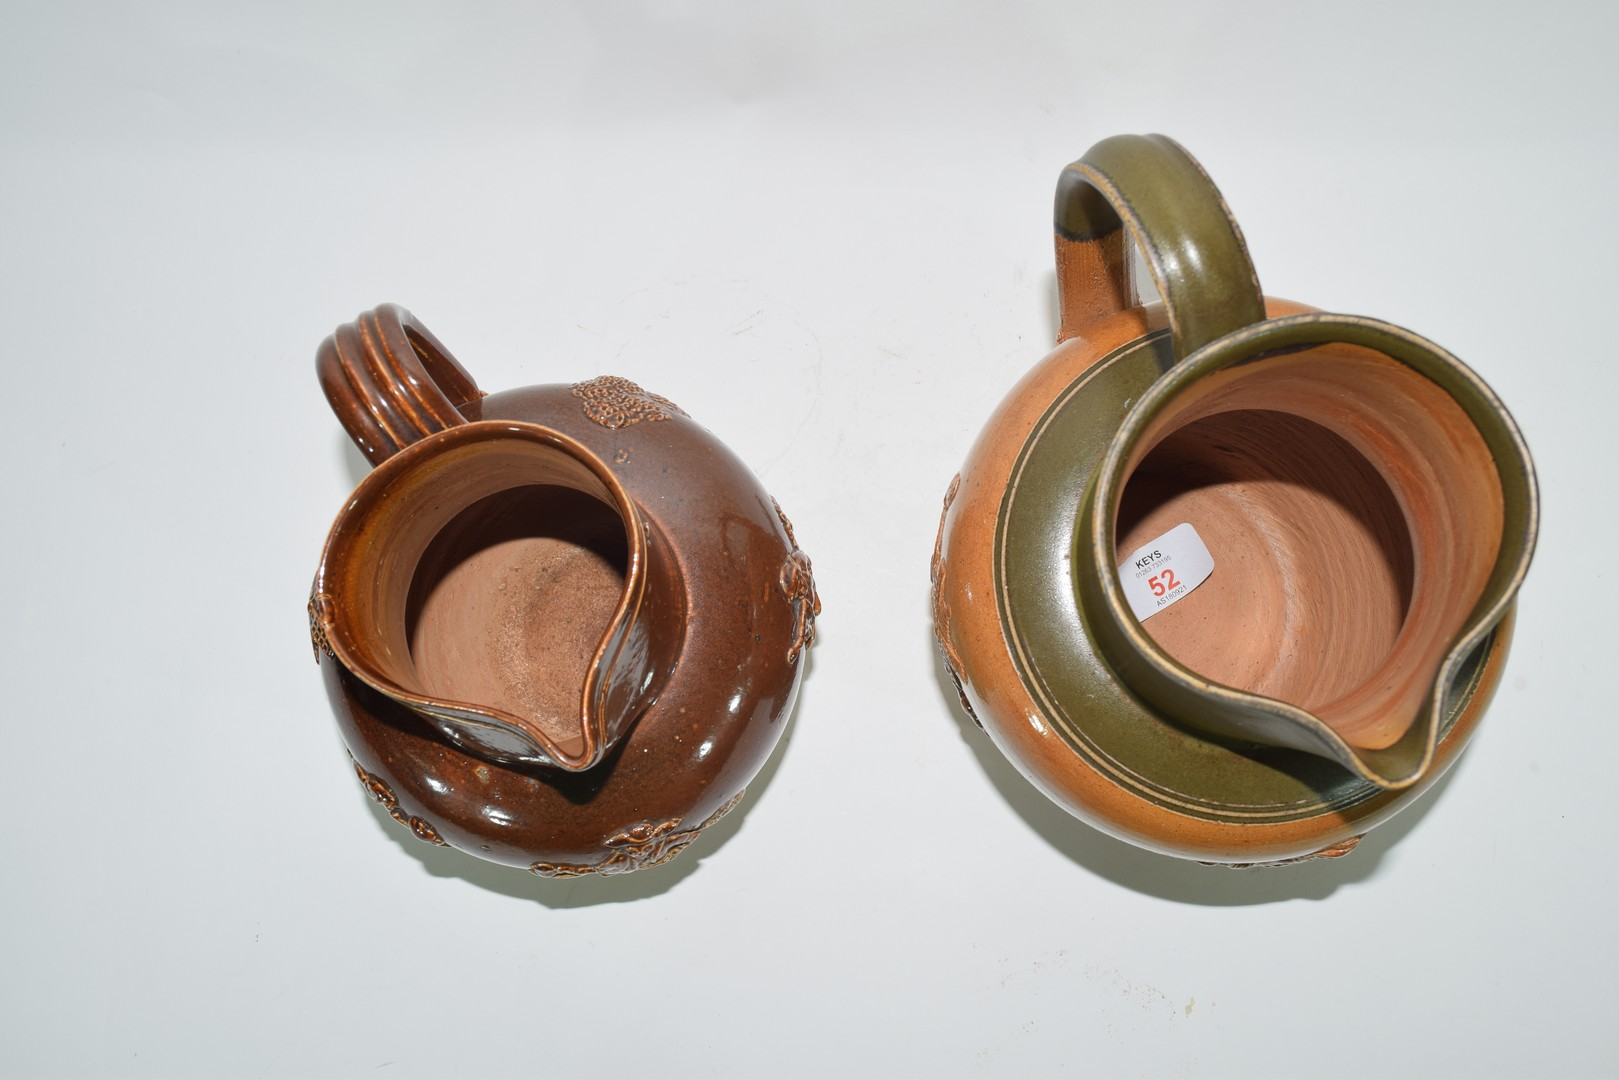 Doulton Lambeth brown harvest ware jug and one other - Image 5 of 8